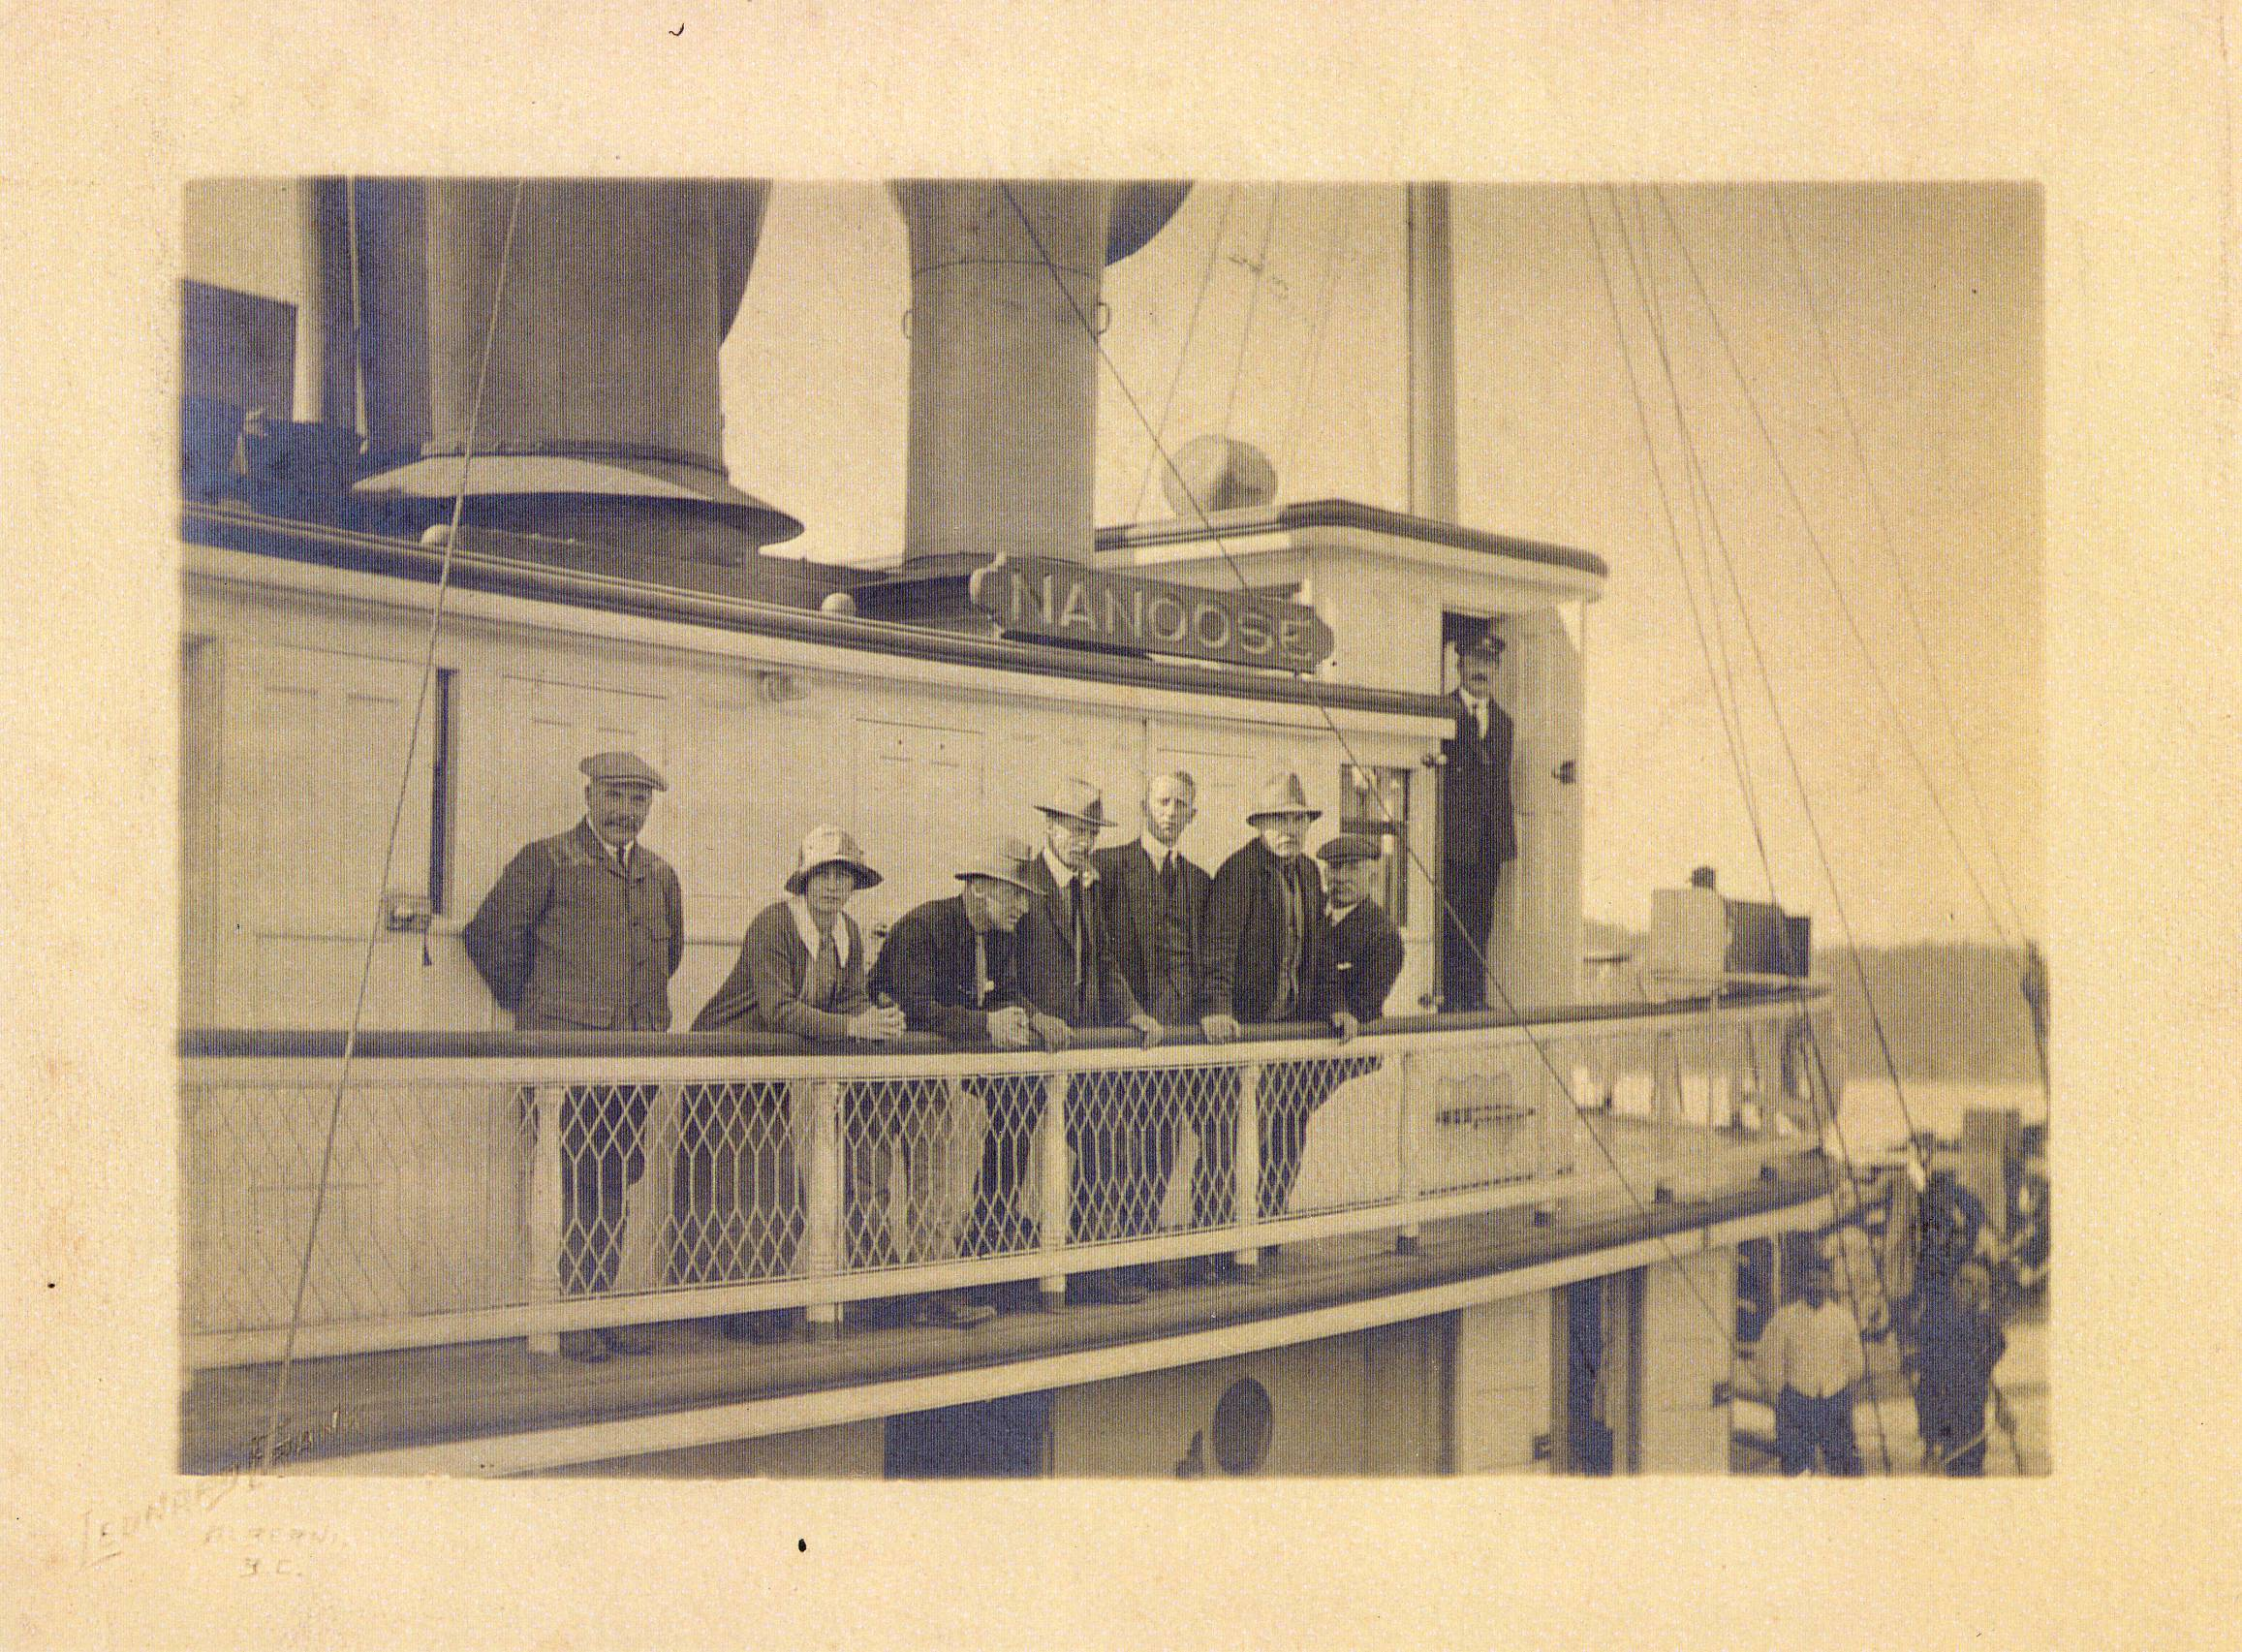 The steamer Nanoose with the members of the Big Interior Mountain expedition on-board.